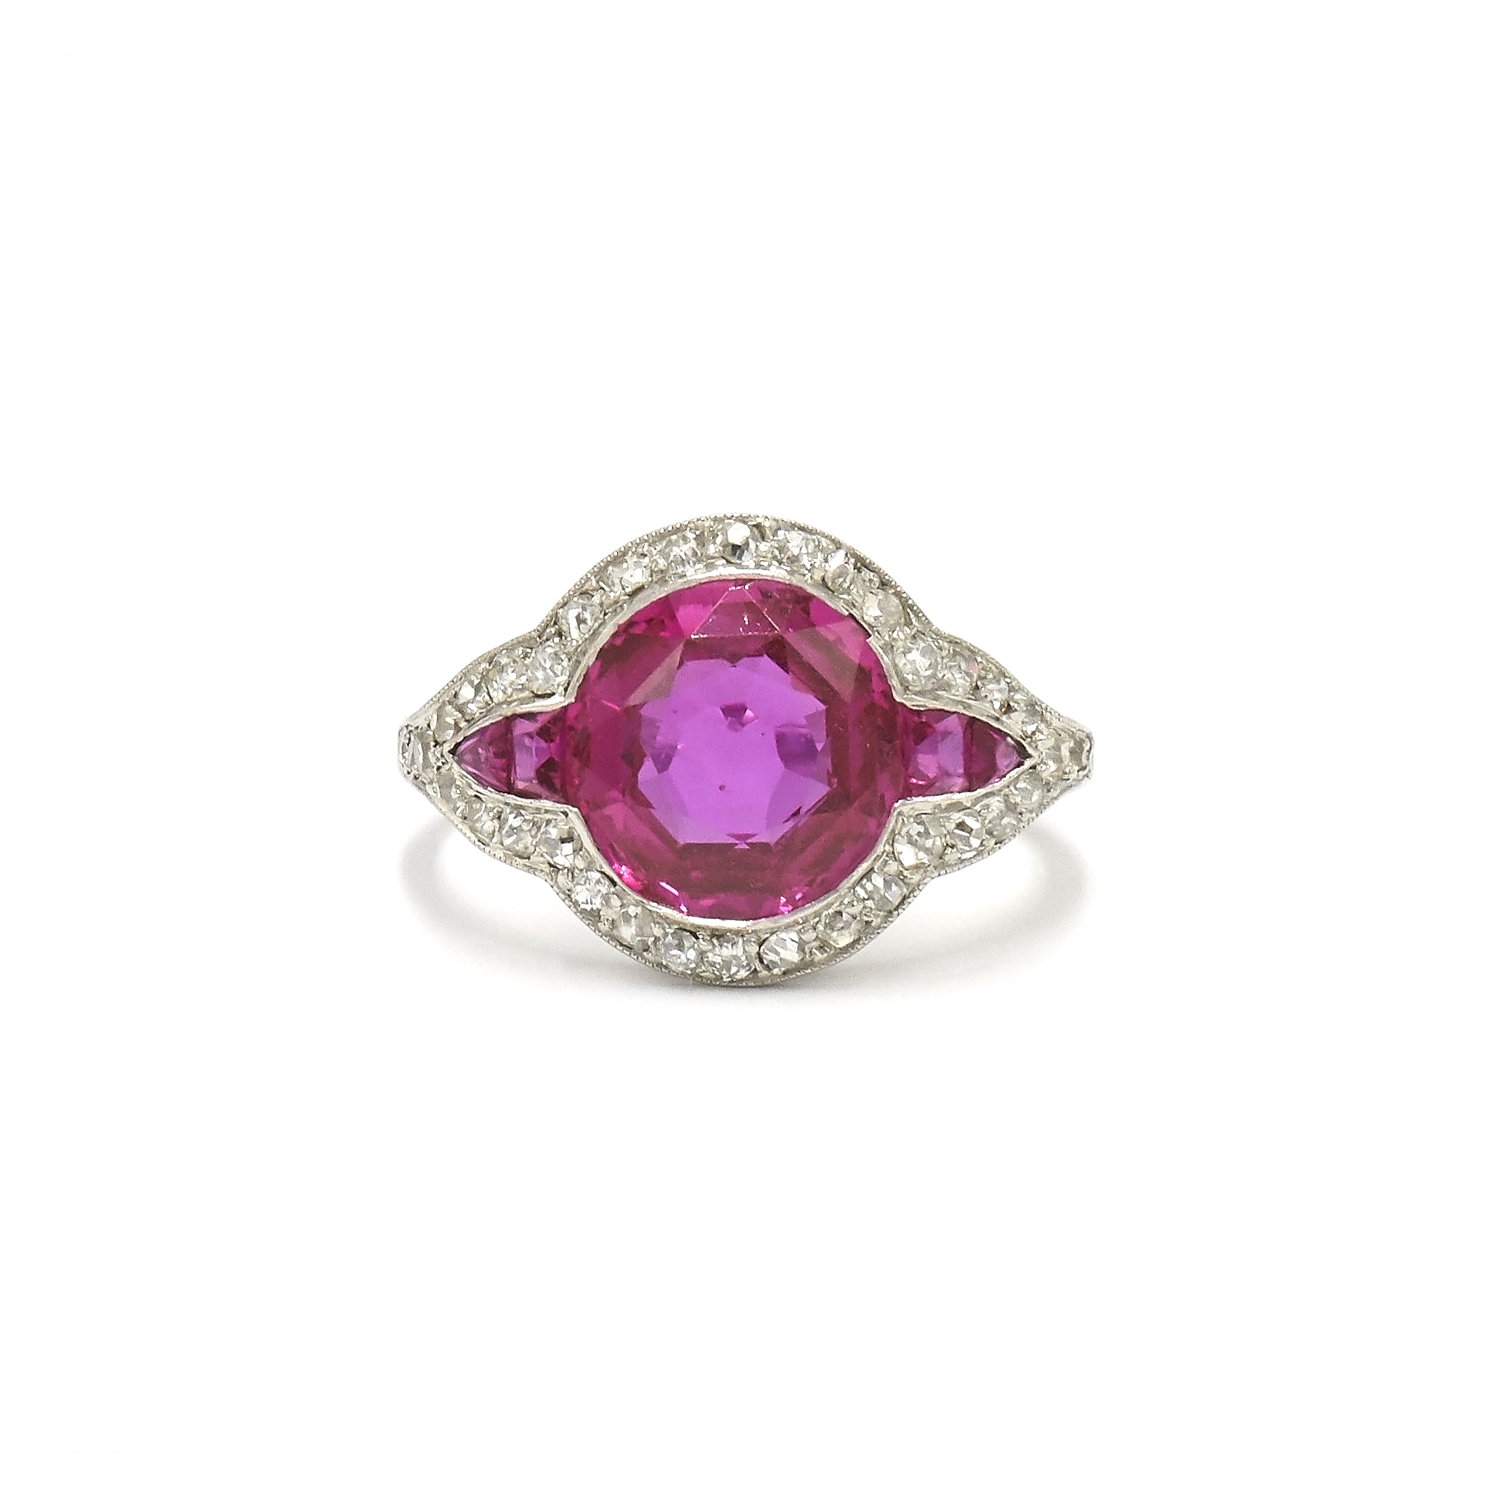 Art Deco Pink Sapphire and Diamond Ring by Cartier New York Style F-34681-FL-0-0